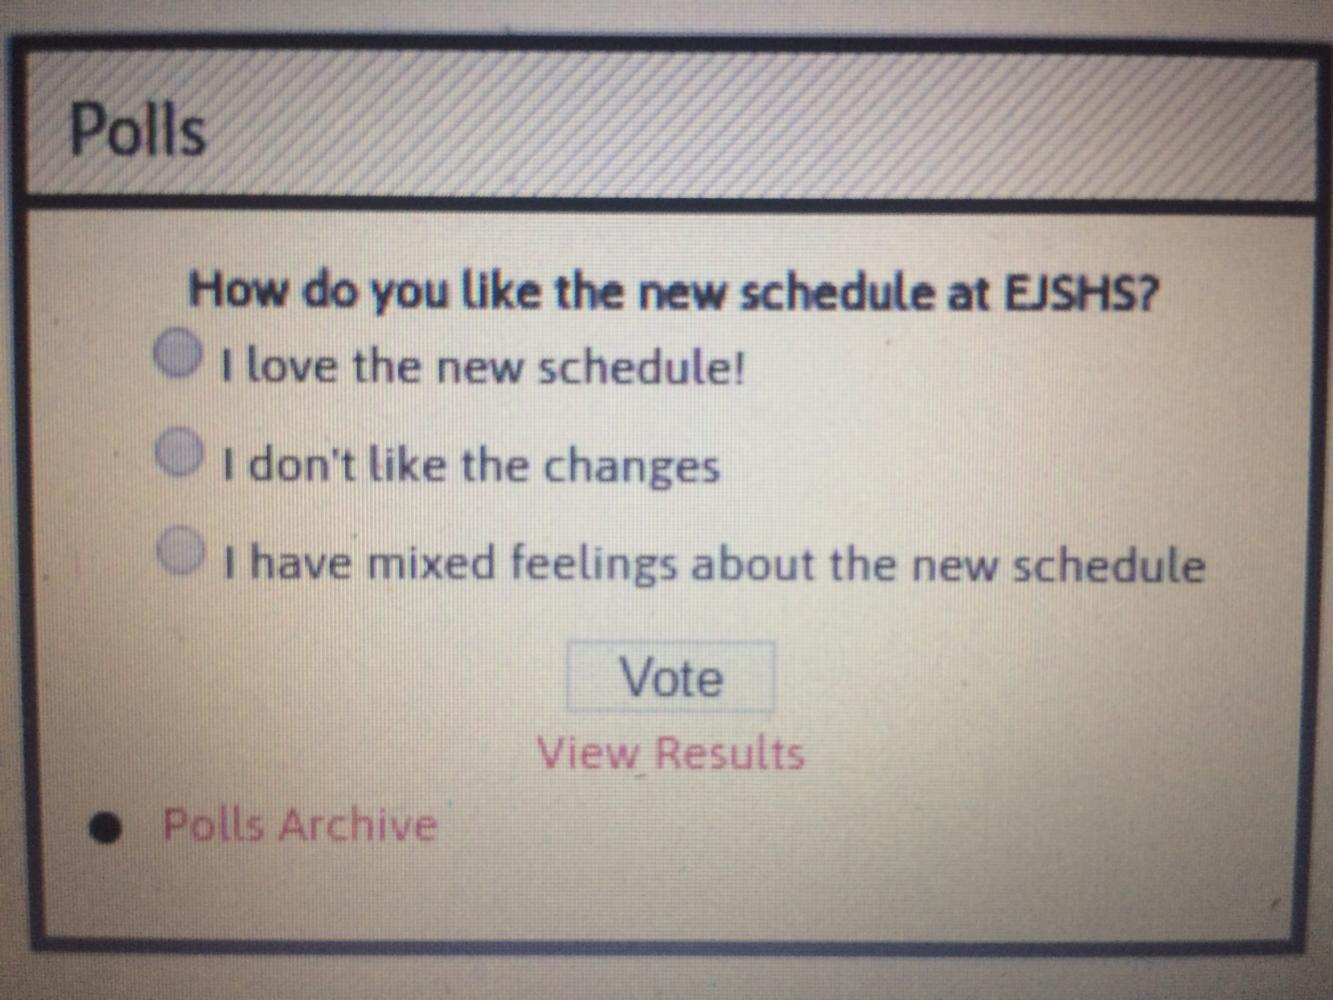 A recent poll was conducted by The Cavalier to figure out how students feel about the new schedule.